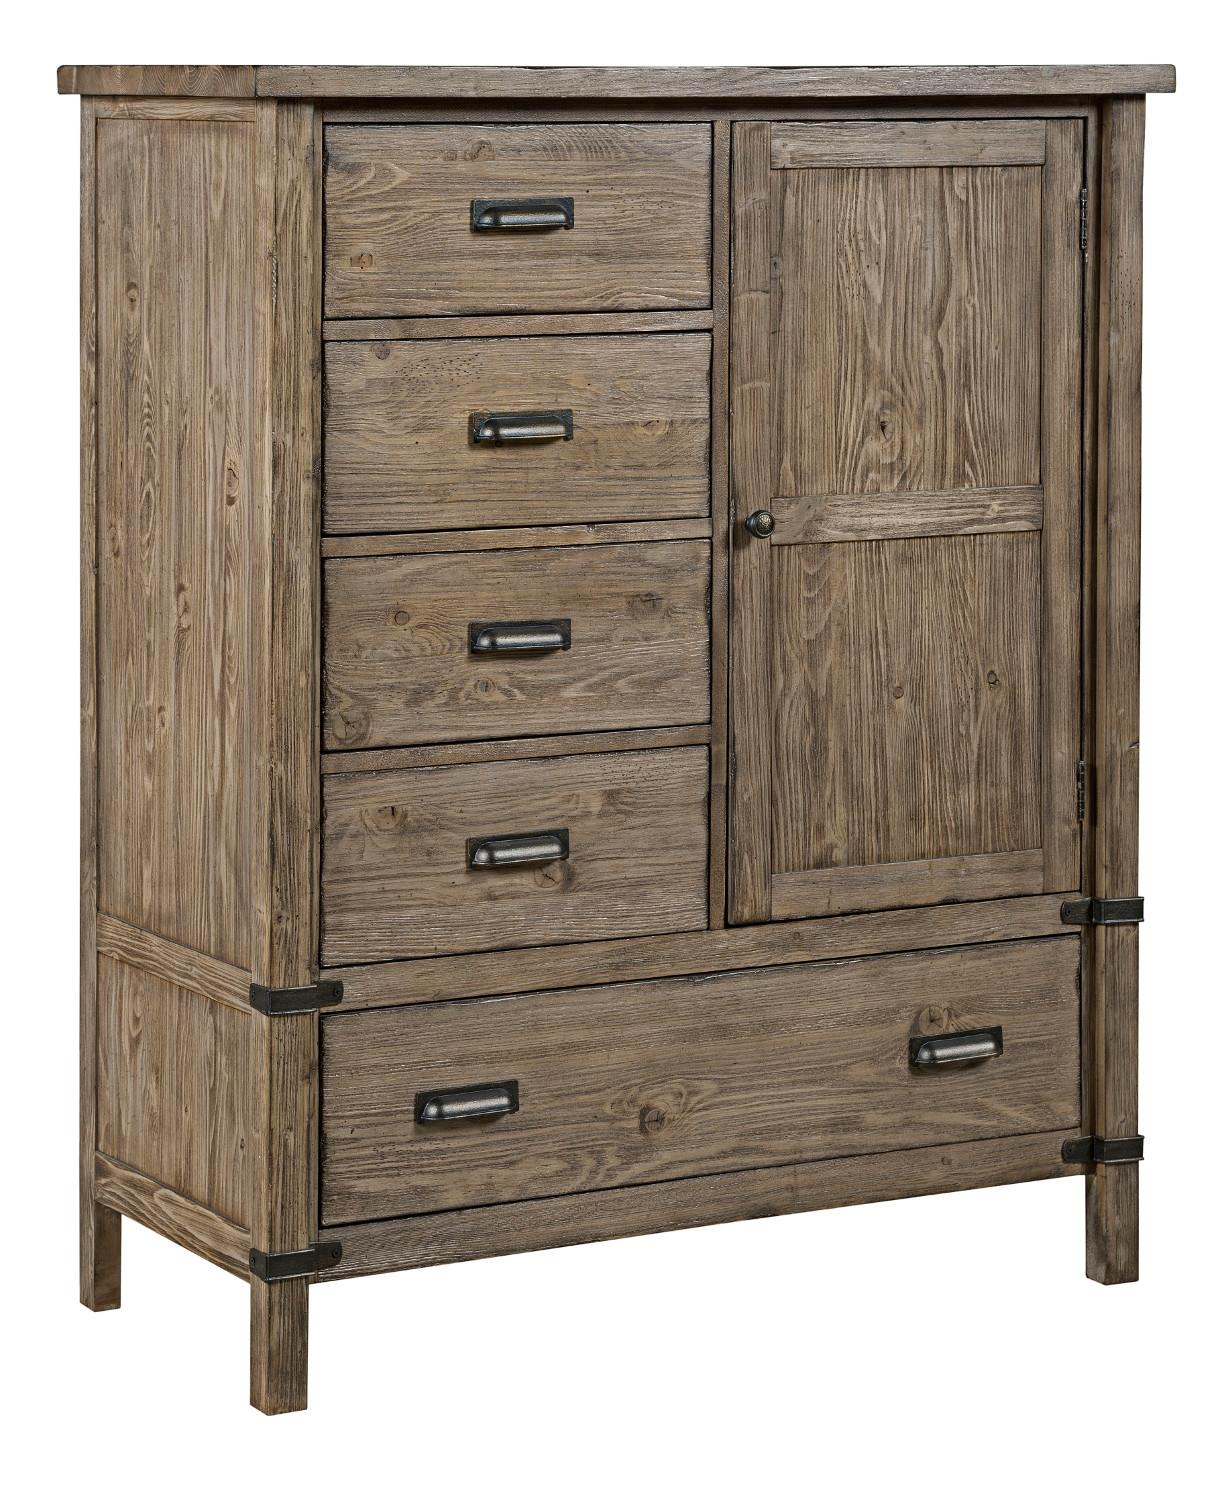 Foundry Door Chest by Kincaid Furniture at Home Collections Furniture